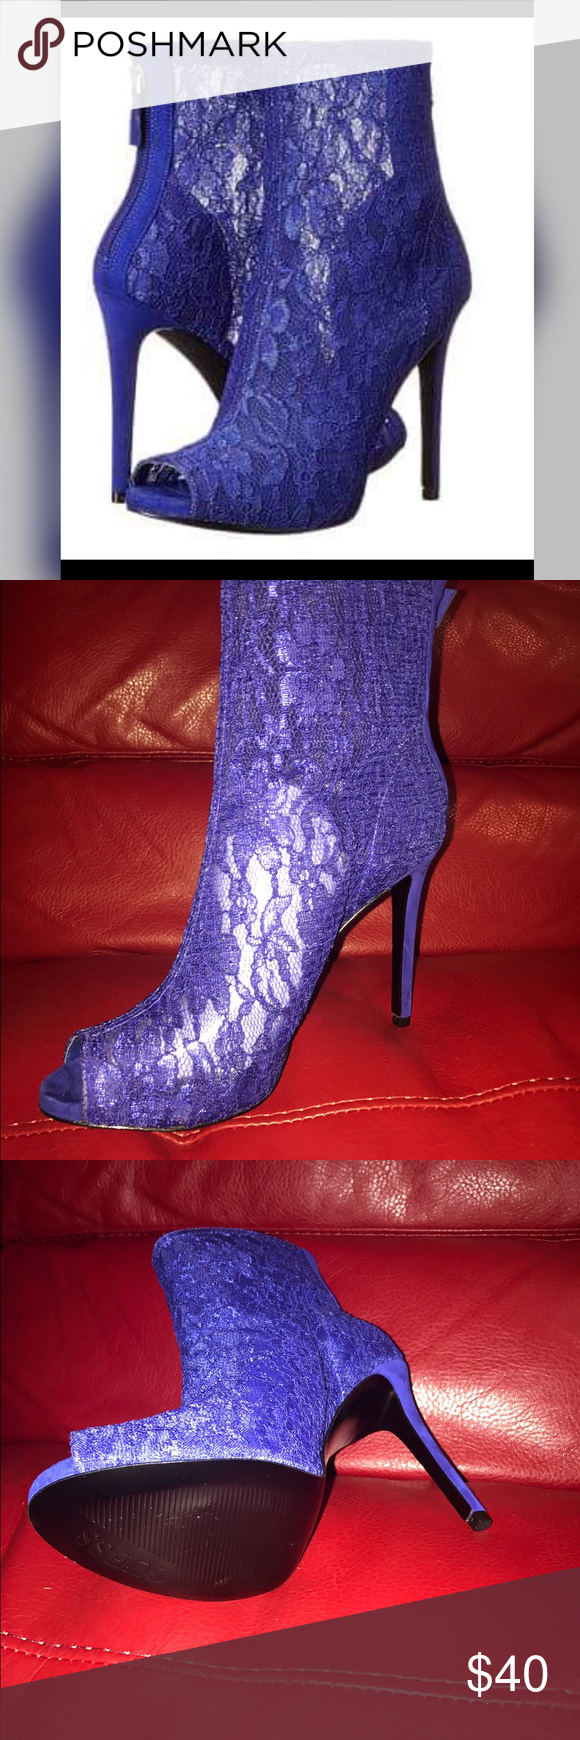 Guess Blue Lace Ankle Boot Heel Sexy Lace Ankle Blue Heels ---Size 10 BRAND NEW ---NWOT---Zipper in back, comes with box---sexy and chic 👠👠 Guess Shoes Heeled Boots